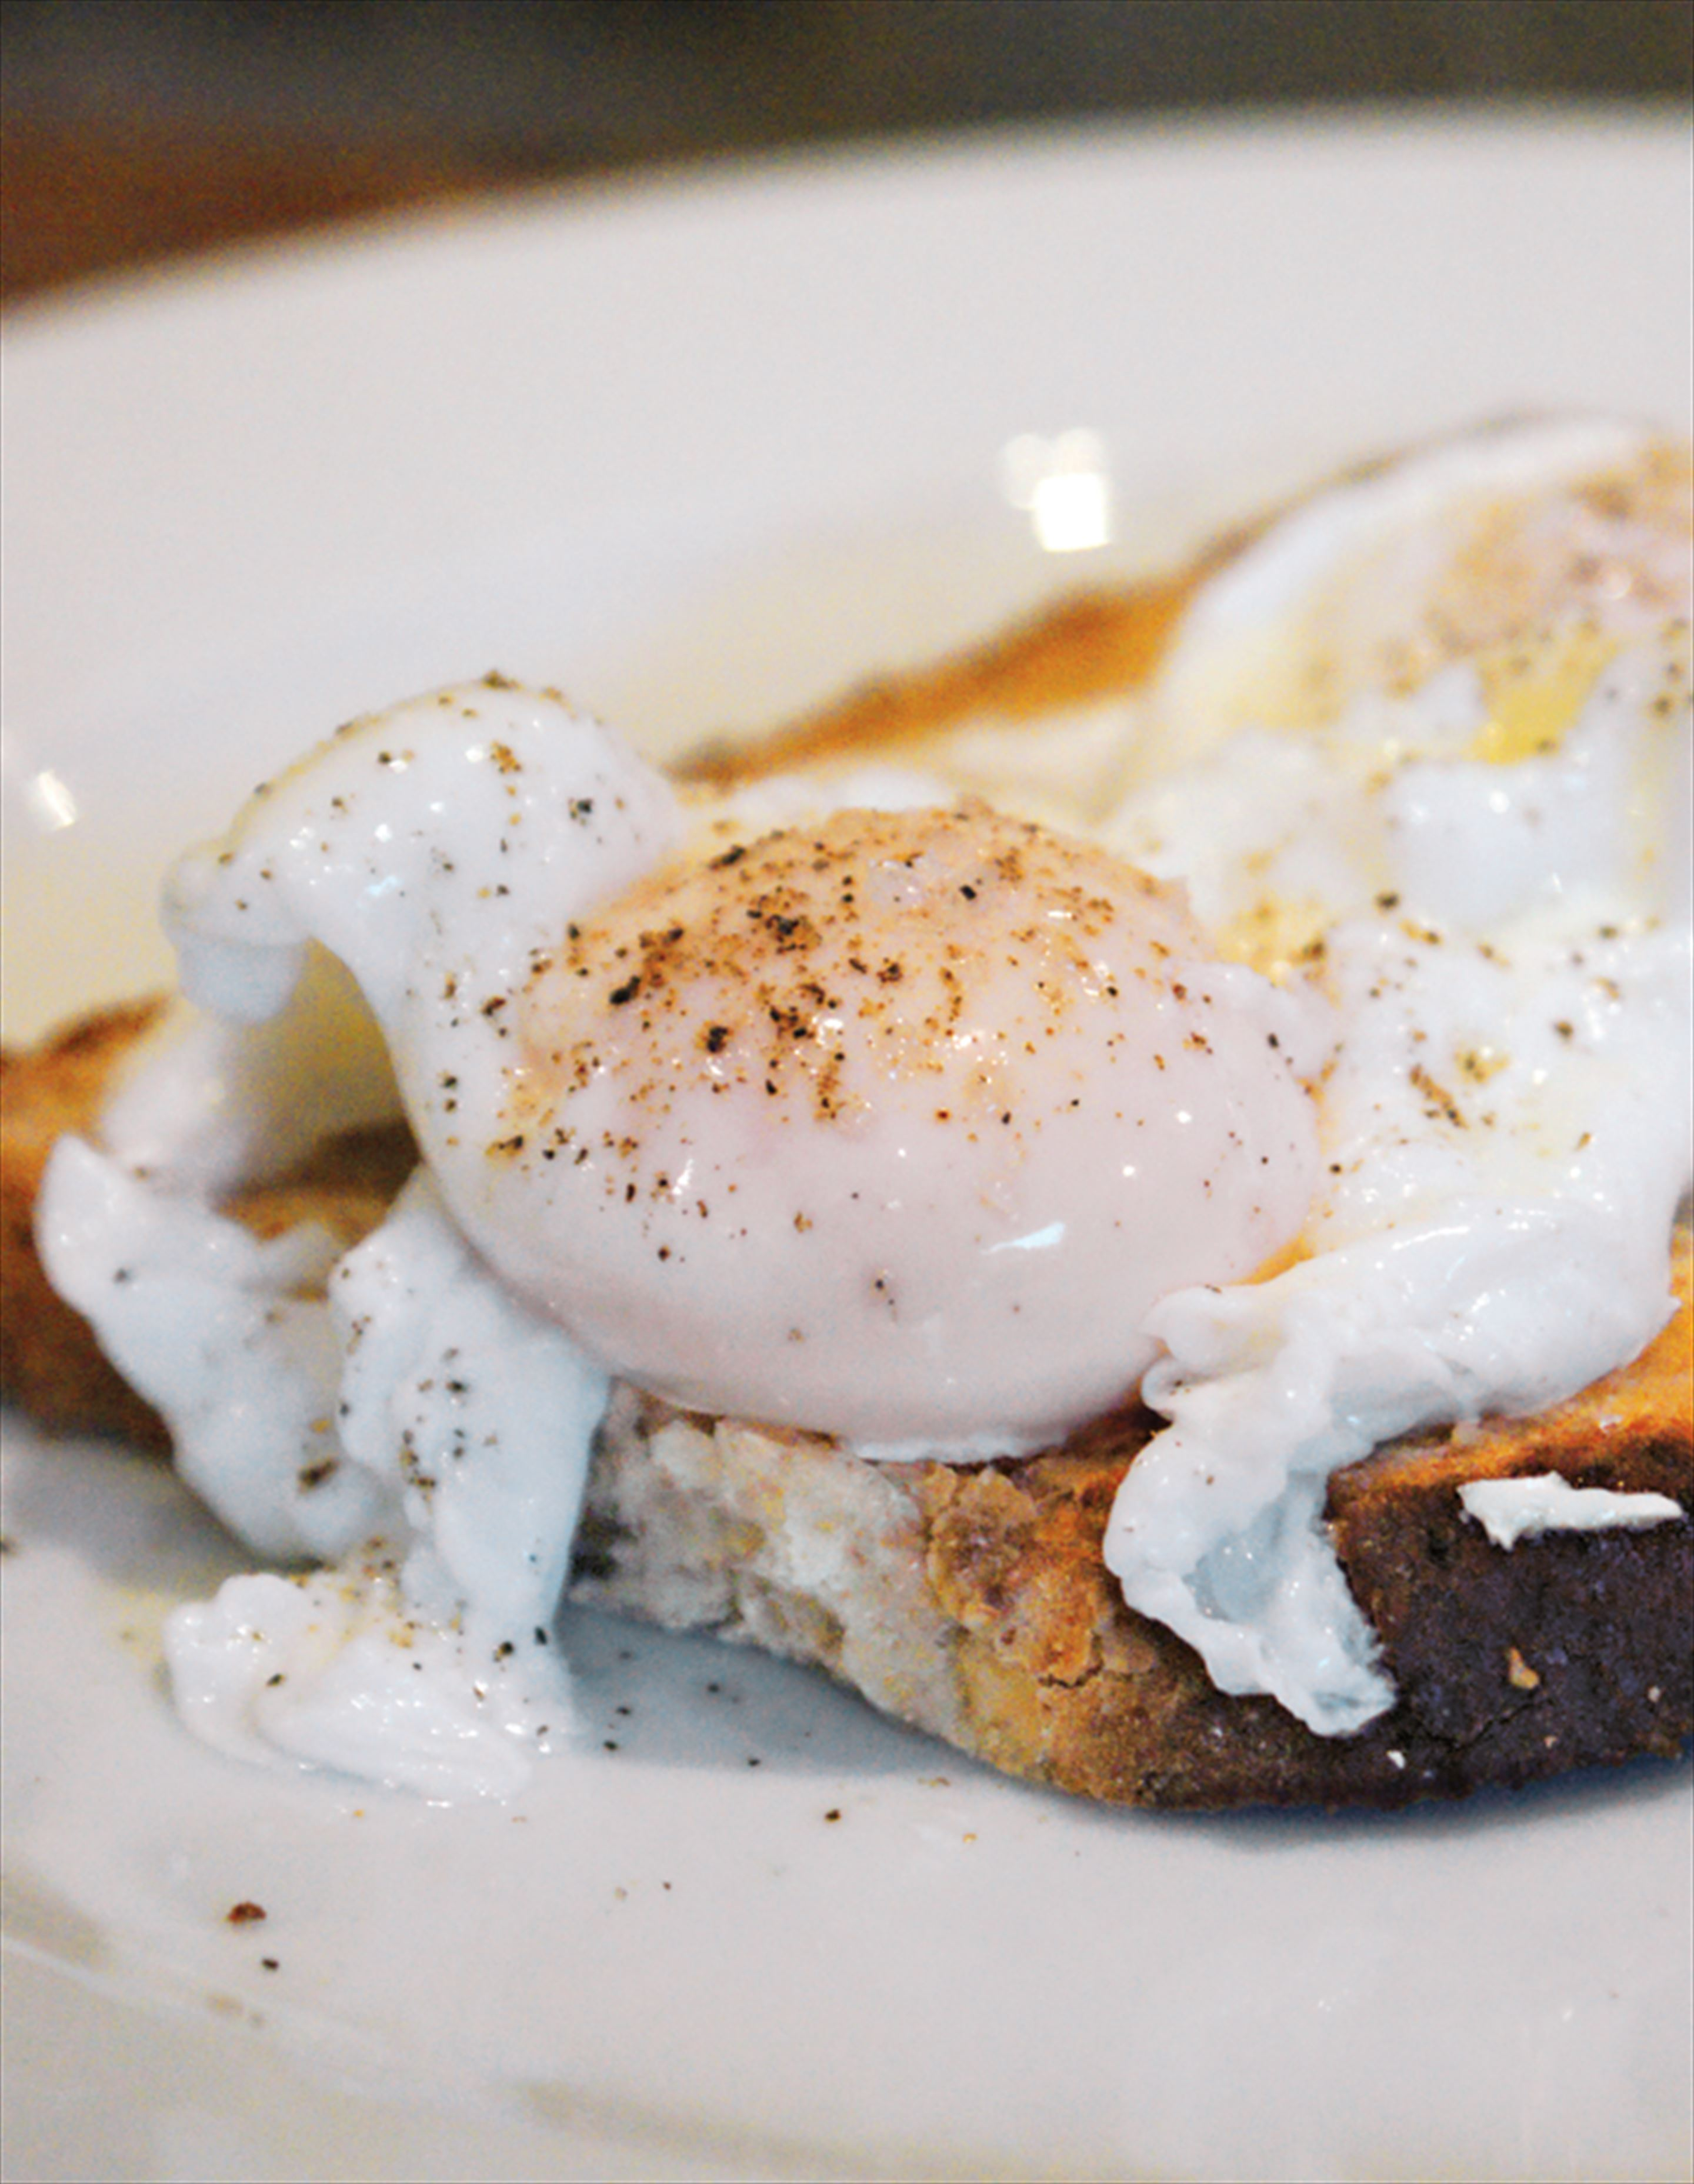 The perfect poached egg